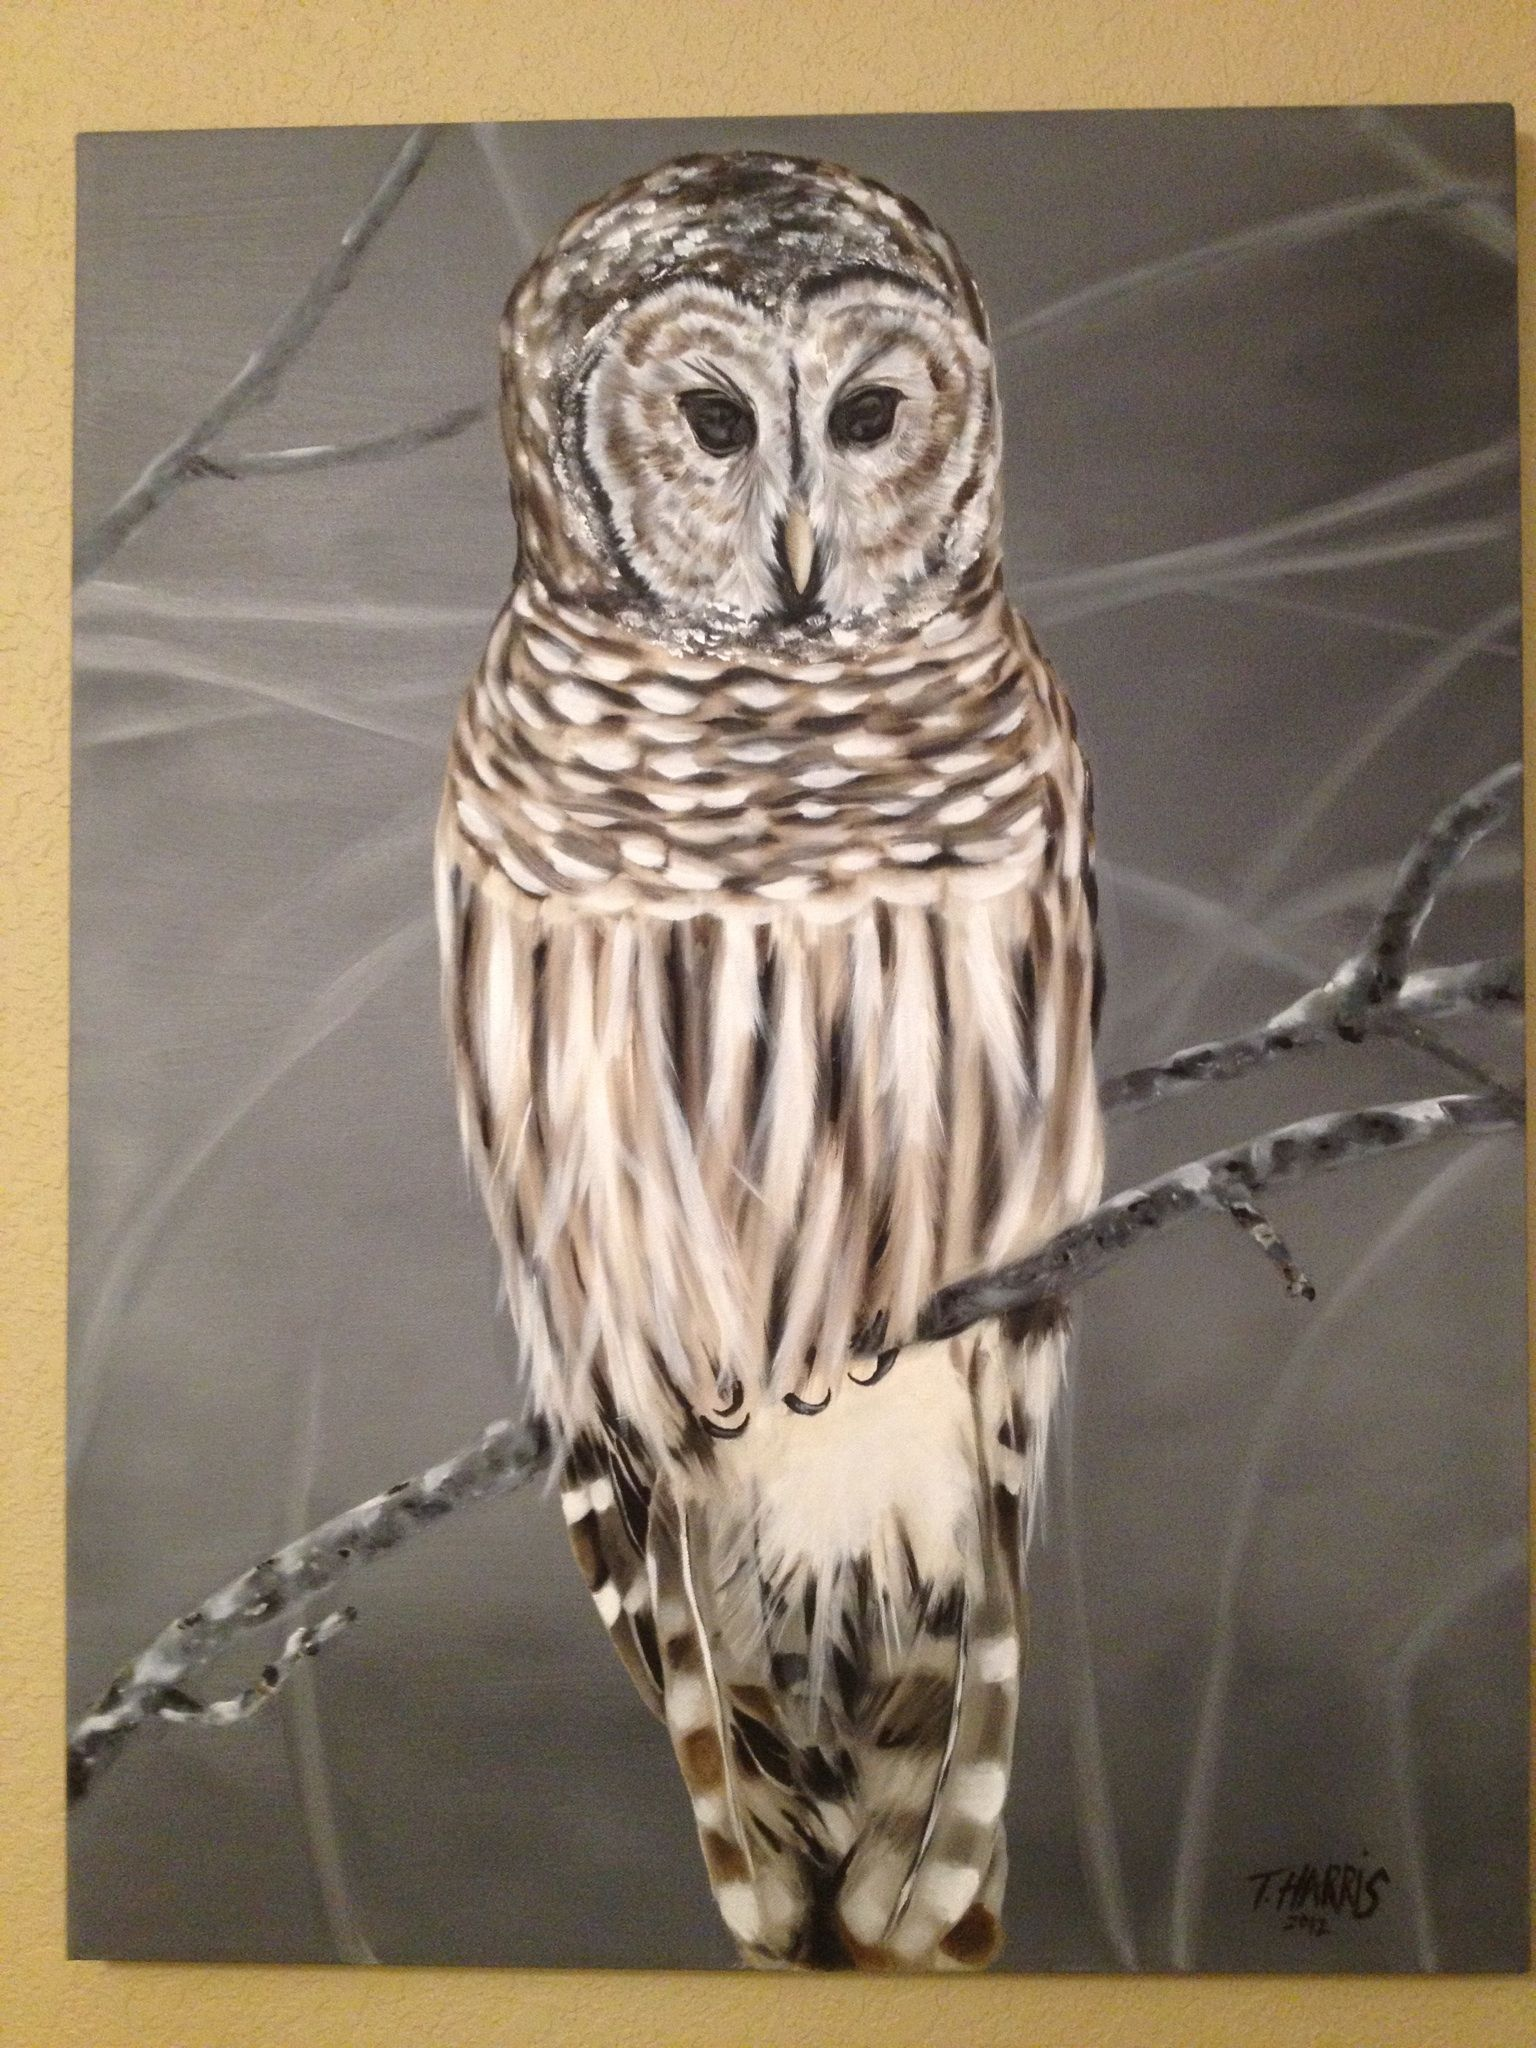 Oil Paintings Owls Ecfddedbefe